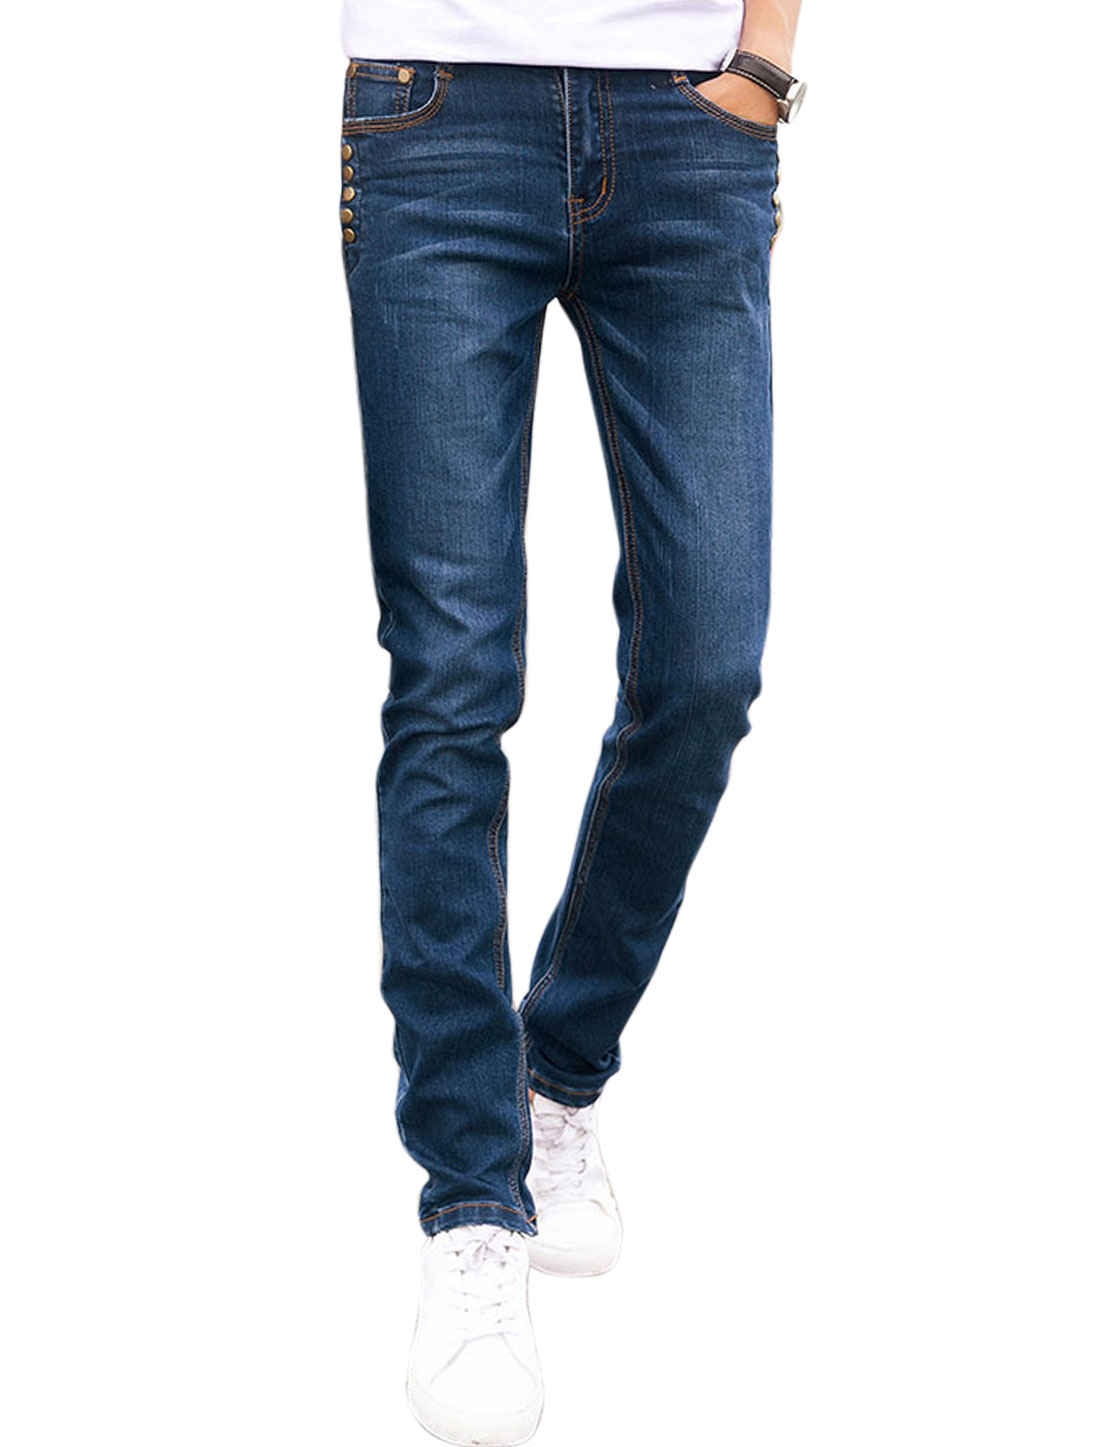 Men Slant Pockets Studs Decor Seamed Straight Leg Jeans Blue W34